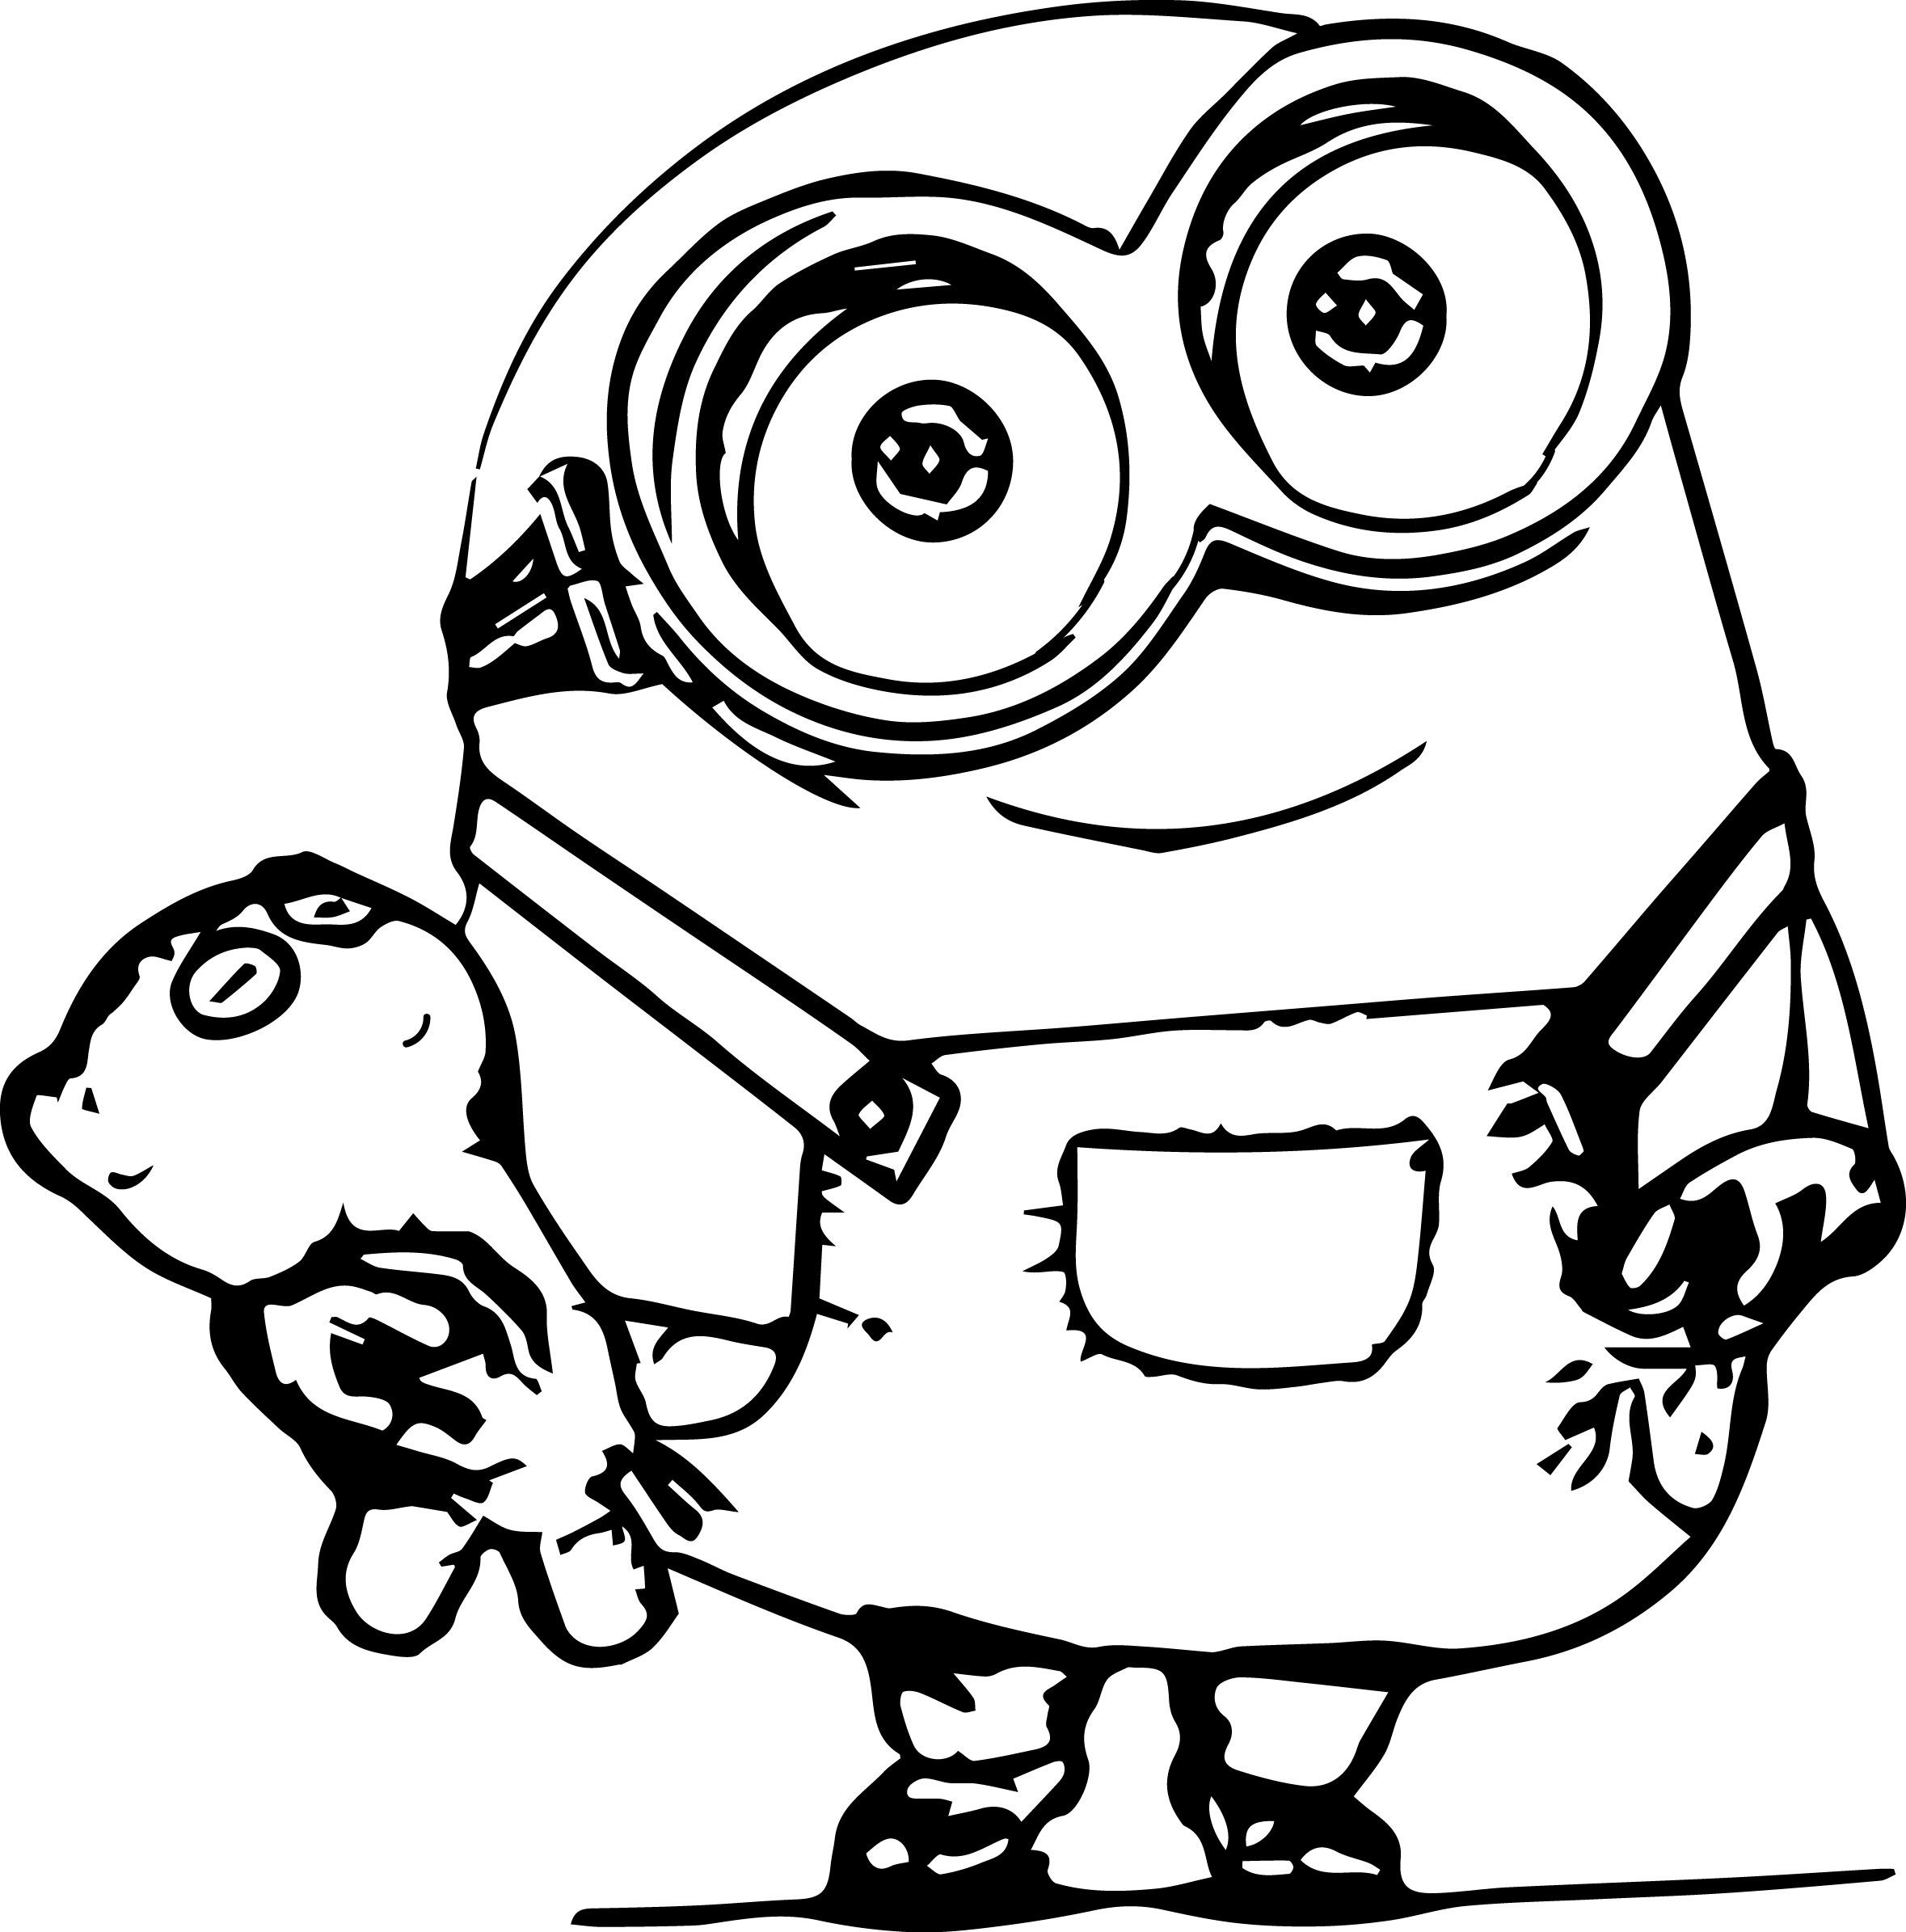 On online coloring minion - Awesome Minions Coloring Pages